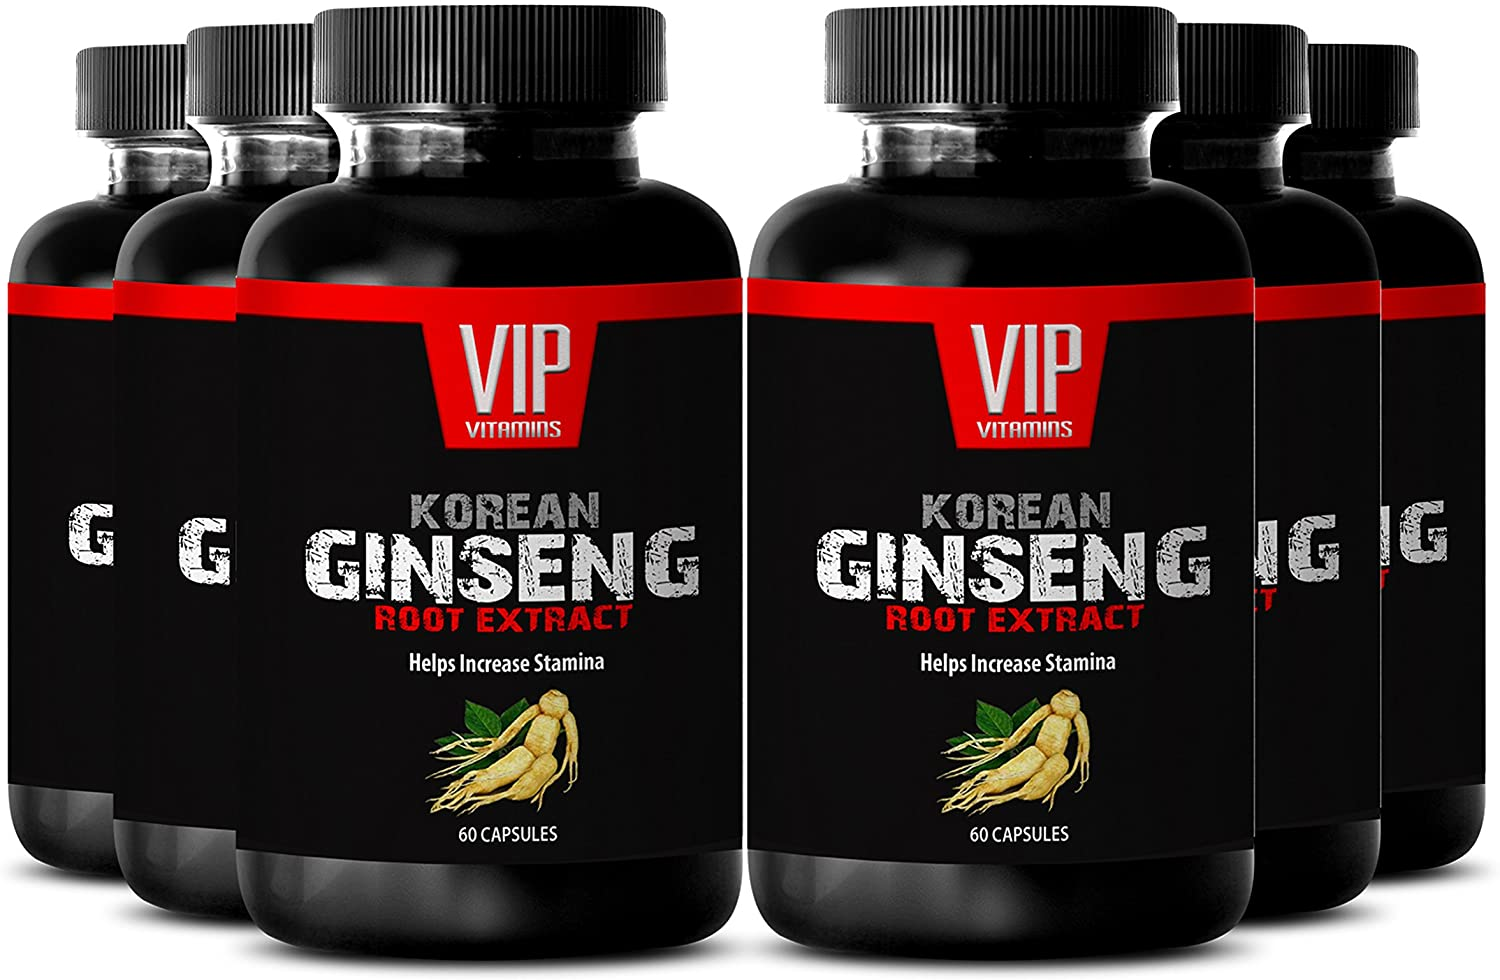 Prime Red Root Supplement - Korean Ginseng - Concentrated from Premium Ginseng Root Extract (6 Bottles 360 Capsules)